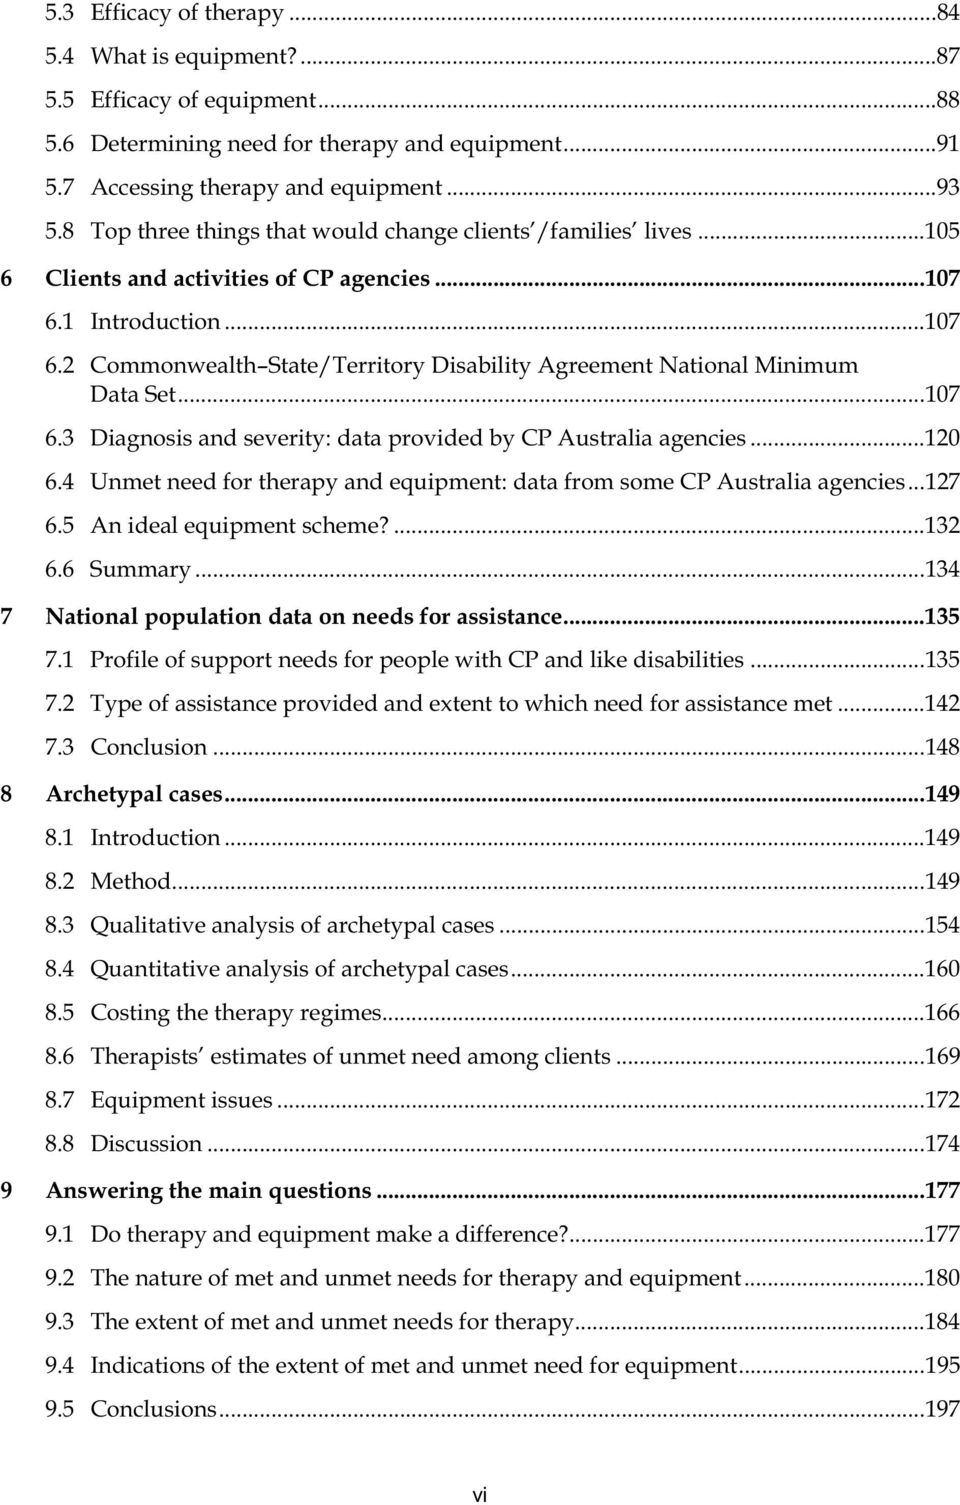 ..107 6.3 Diagnosis and severity: data provided by CP Australia agencies...120 6.4 Unmet need for therapy and equipment: data from some CP Australia agencies...127 6.5 An ideal equipment scheme?...132 6.